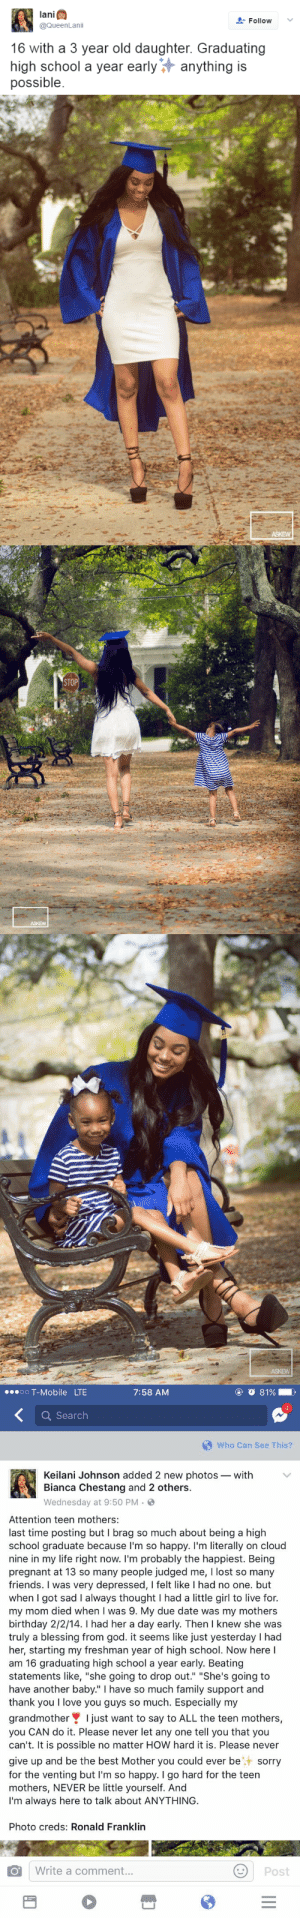 """Birthday, Family, and Friends: lani  @QueenLanii  FollowV  16 with a 3 year old daughter. Graduating  high school a year earlyanything is  possible   ASKEW   STOP  ASKEW   ASKEW   oO T-Mobile LTE  7:58 AM  4  Q Search  Who Can See This?  Keilani Johnson added 2 new photos- with  Bianca Chestang and 2 others.  Wednesday at 9:50 PM .  Attention teen mothers:  last time posting but I brag so much about being a high  school graduate because I'm so happy. I'm literally on cloud  nine in my life right now. I'm probably the happiest. Being  pregnant at 13 so many people judged me, I lost so many  friends. I was very depressed, I felt like I had no one. but  when I got sad I always thought I had a little girl to live for.  my mom died when I was 9. My due date was my mothers  birthday 2/2/14. I had her a day early. Then I knew she was  truly a blessing from god. it seems like just yesterday I had  her, starting my freshman year of high school. Now here l  am 16 graduating high school a year early. Beating  statements like, """"she going to drop out."""" """"She's going to  have another baby."""" I have so much family support and  thank you I love you guys so much. Especially my  grandmotherI just want to say to ALL the teen mothers,  you CAN do it. Please never let any one tell you that you  can't. It is possible no matter HOW hard it is. Please never  give up and be the best Mother you could ever besorry  for the venting but I'm so happy. I go hard for the teen  mothers, NEVER be little yourself. And  I'm always here to talk about ANYTHING  Photo creds: Ronald Franklin  Write a comment.  Post daddycoolmurphy:  youllbefinenothingsfallenoff:  purplepisces:  destinyrush:  A true inspiration🙌🏾  I absolutely love this   Wonderful Mum.   I hate girls who are so young when they get pregnant being judged. Because usually the father is 3 or more years older than them and no one seems to think that's a problem"""